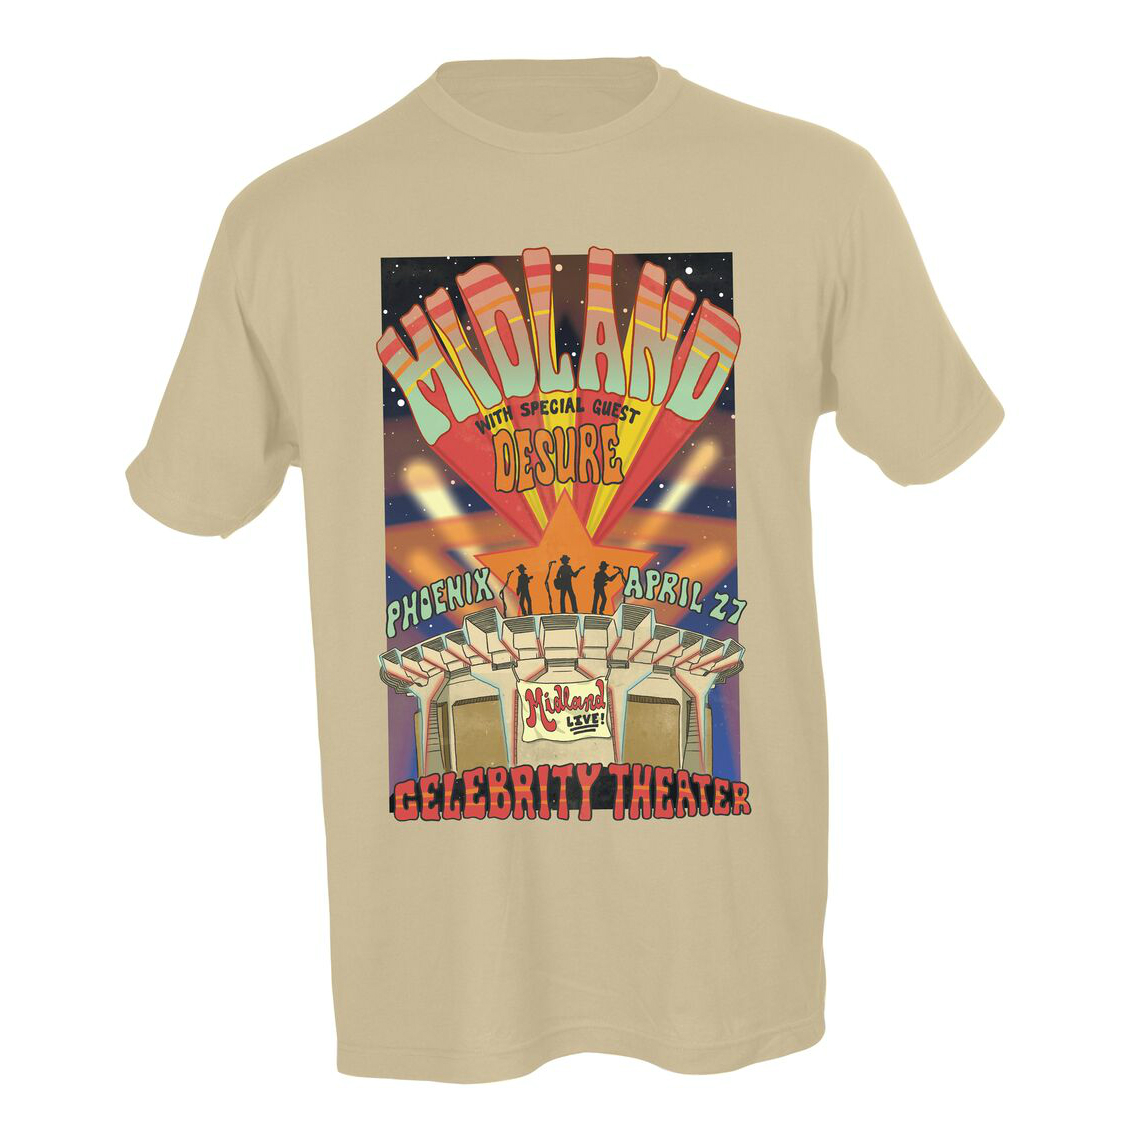 Celebrity Theater Natural T-Shirt